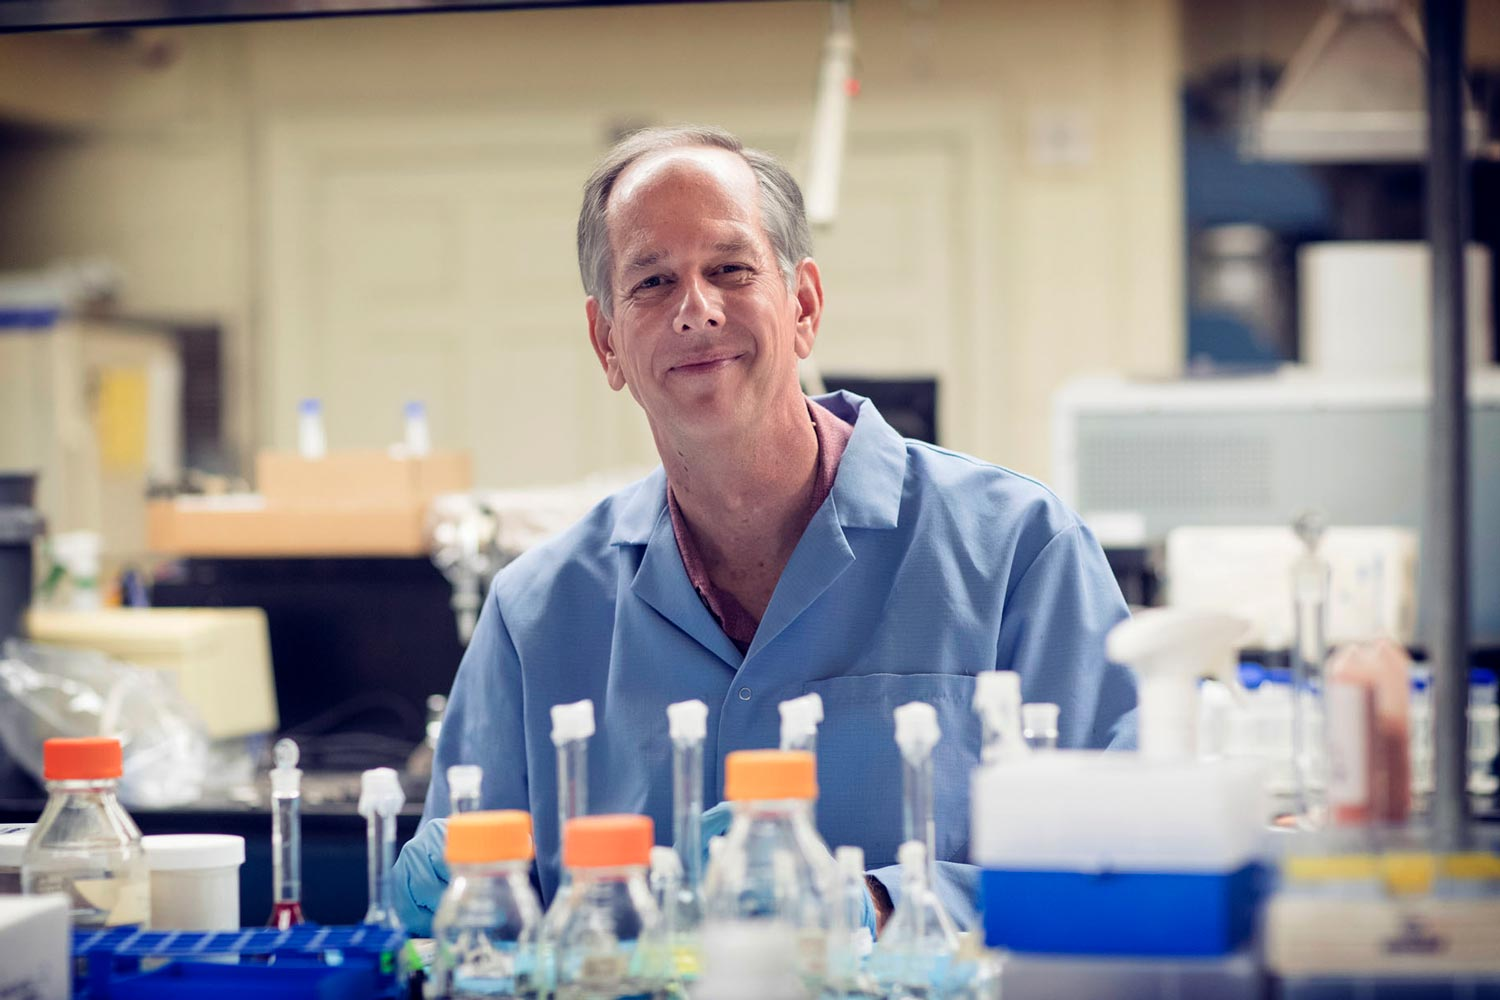 Civil and environmental engineering professor Jim Smith developed MadiDrop+ in his UVA lab.